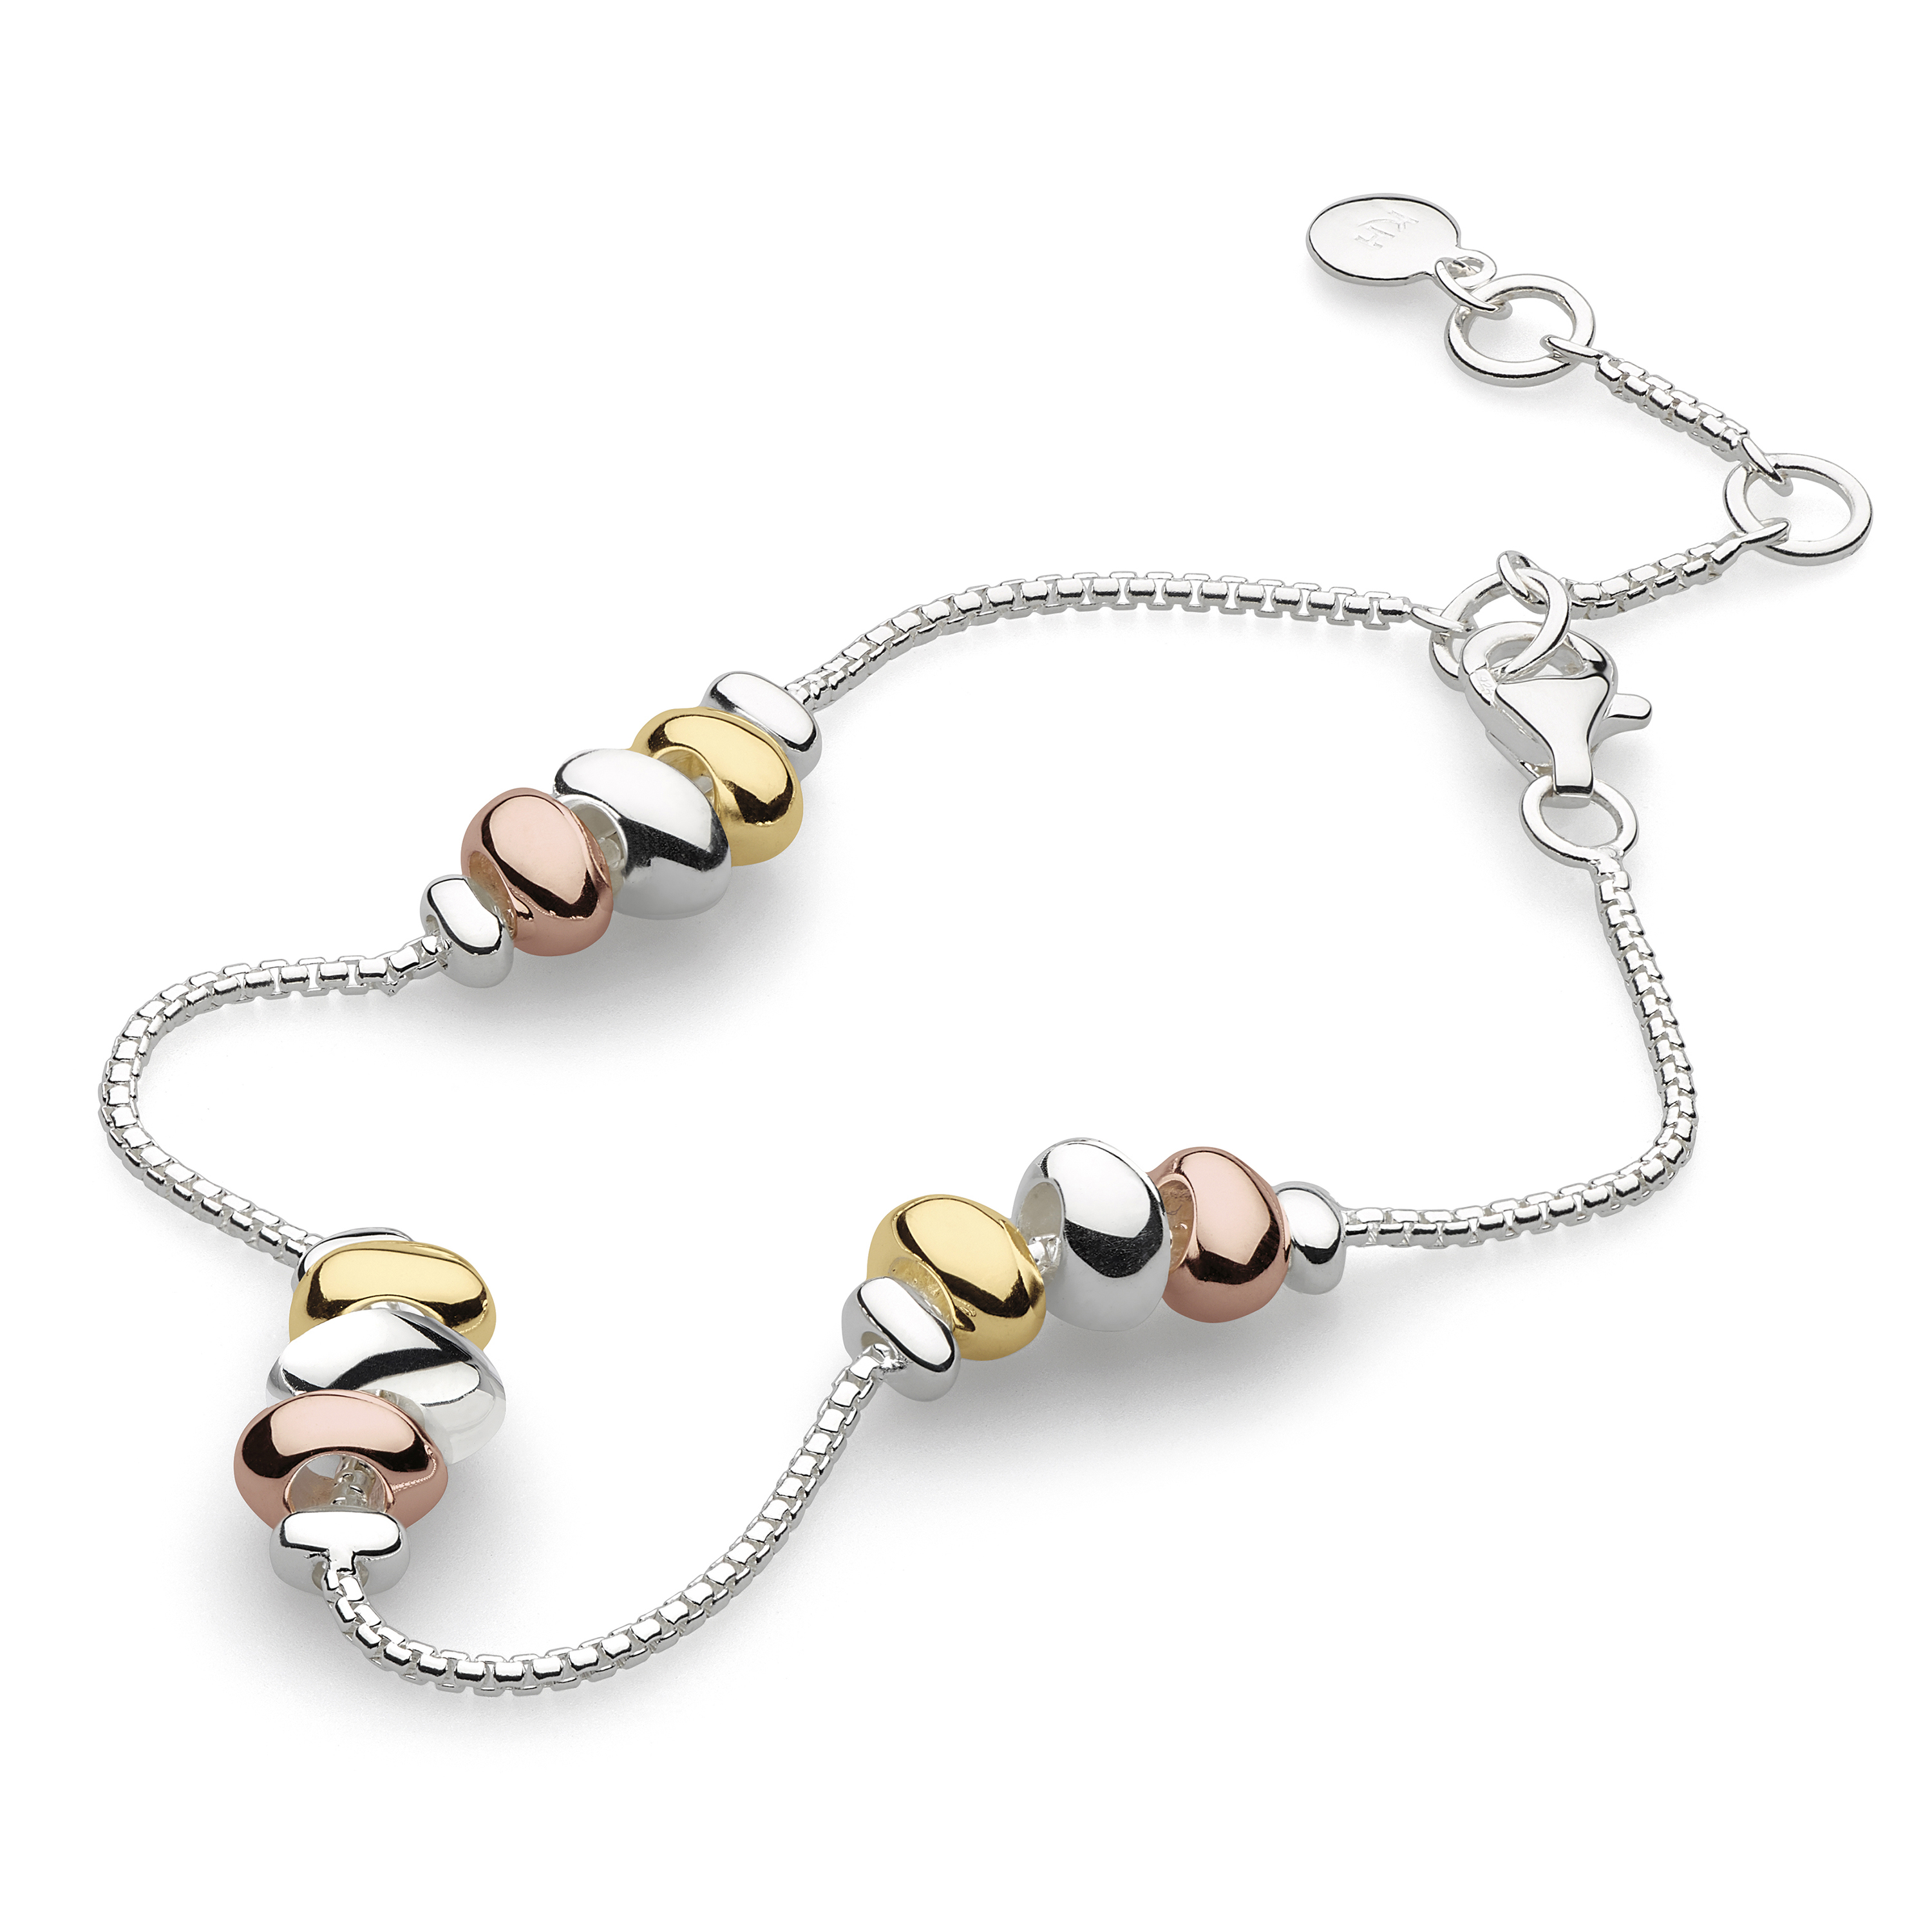 Sterling silver and gold/rose plate pebble bracelet